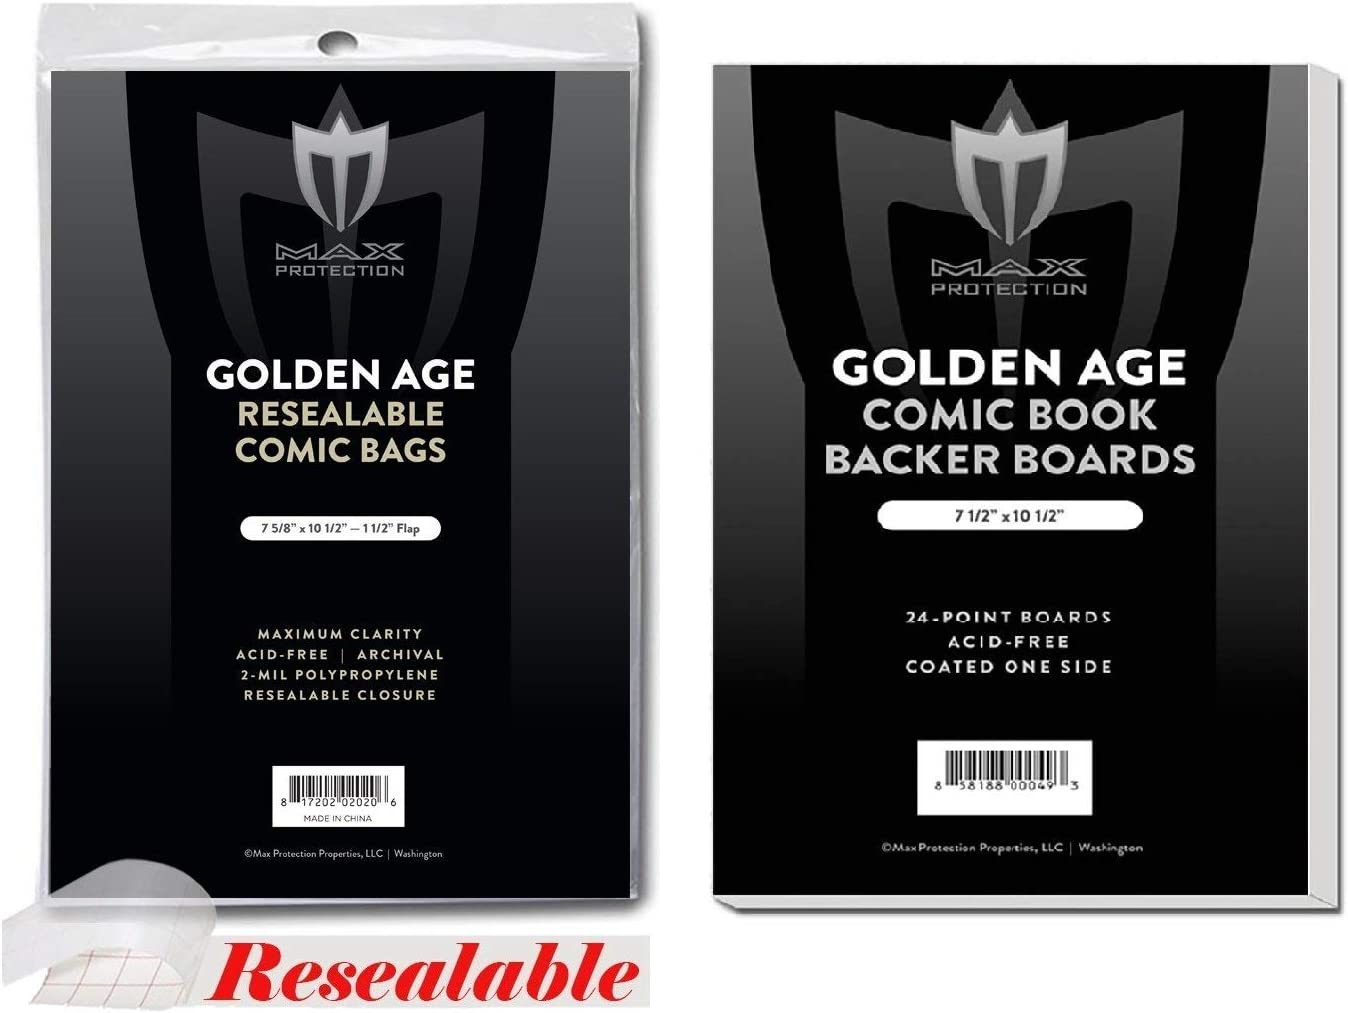 (100) Resealable Golden Alter Größe Ultra Clear Comic Buch Bags und Boards - durch Max Pro (Qty= 100 Bags und 100 Boards)